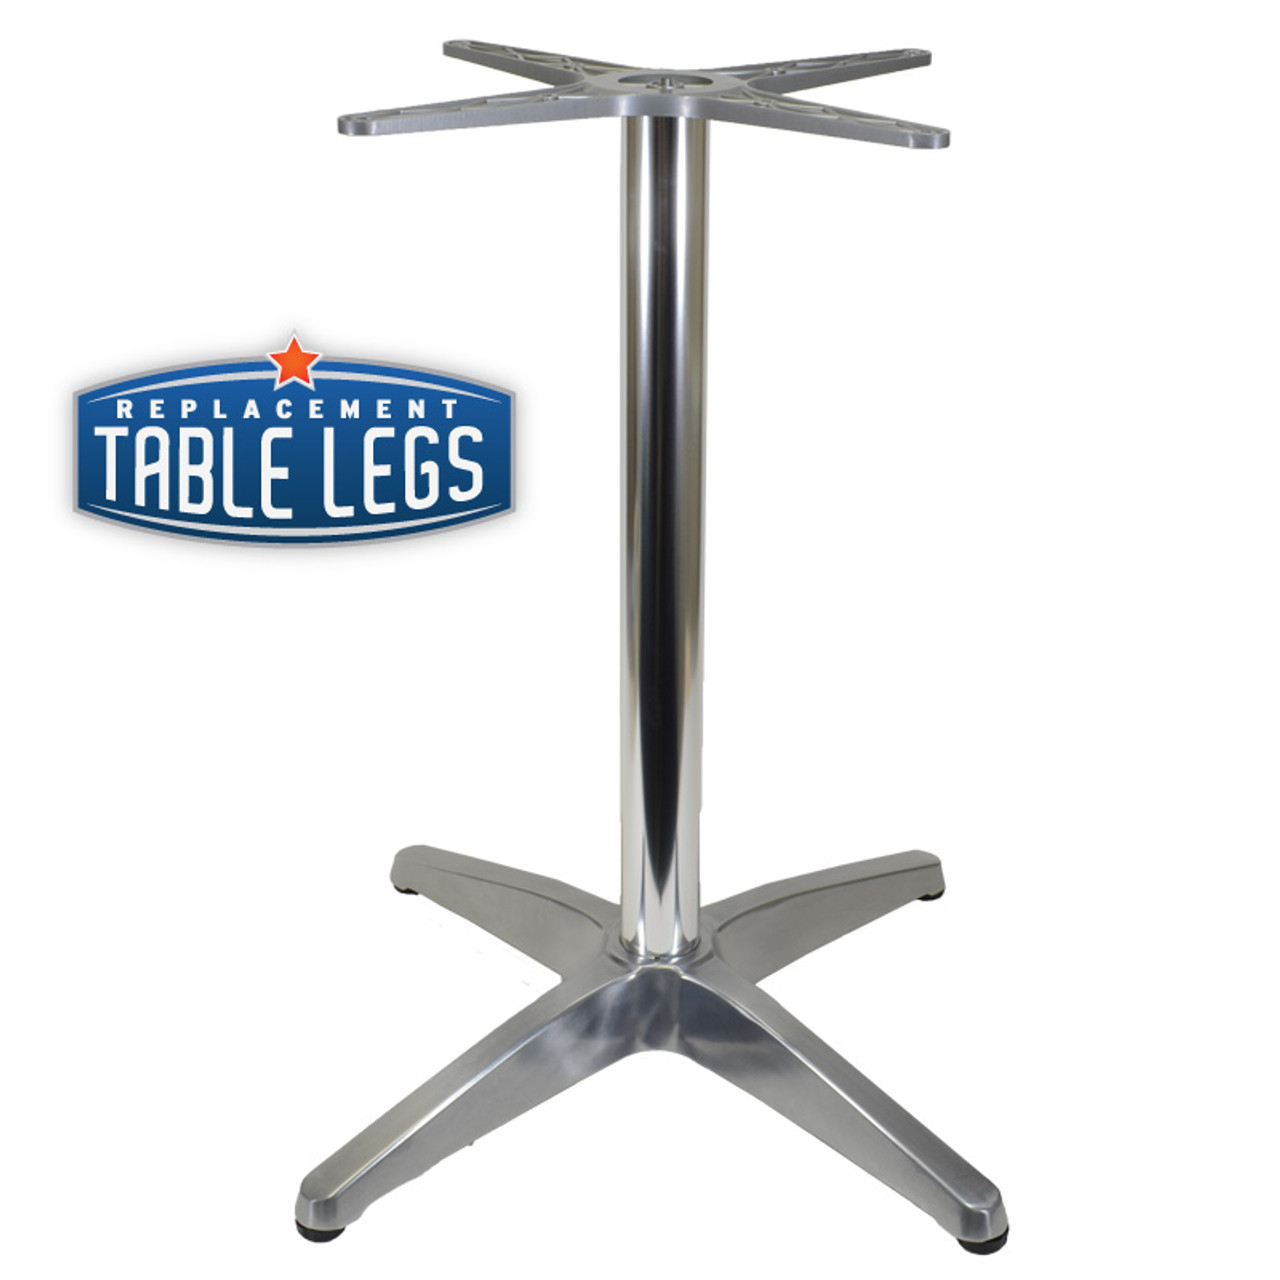 "4 LEG PRONG TABLE BASE, Polish Aluminum, 28-1/4"" height, 26"" base spread, 2-1/2""diameter column - replacementtablelegs.com"